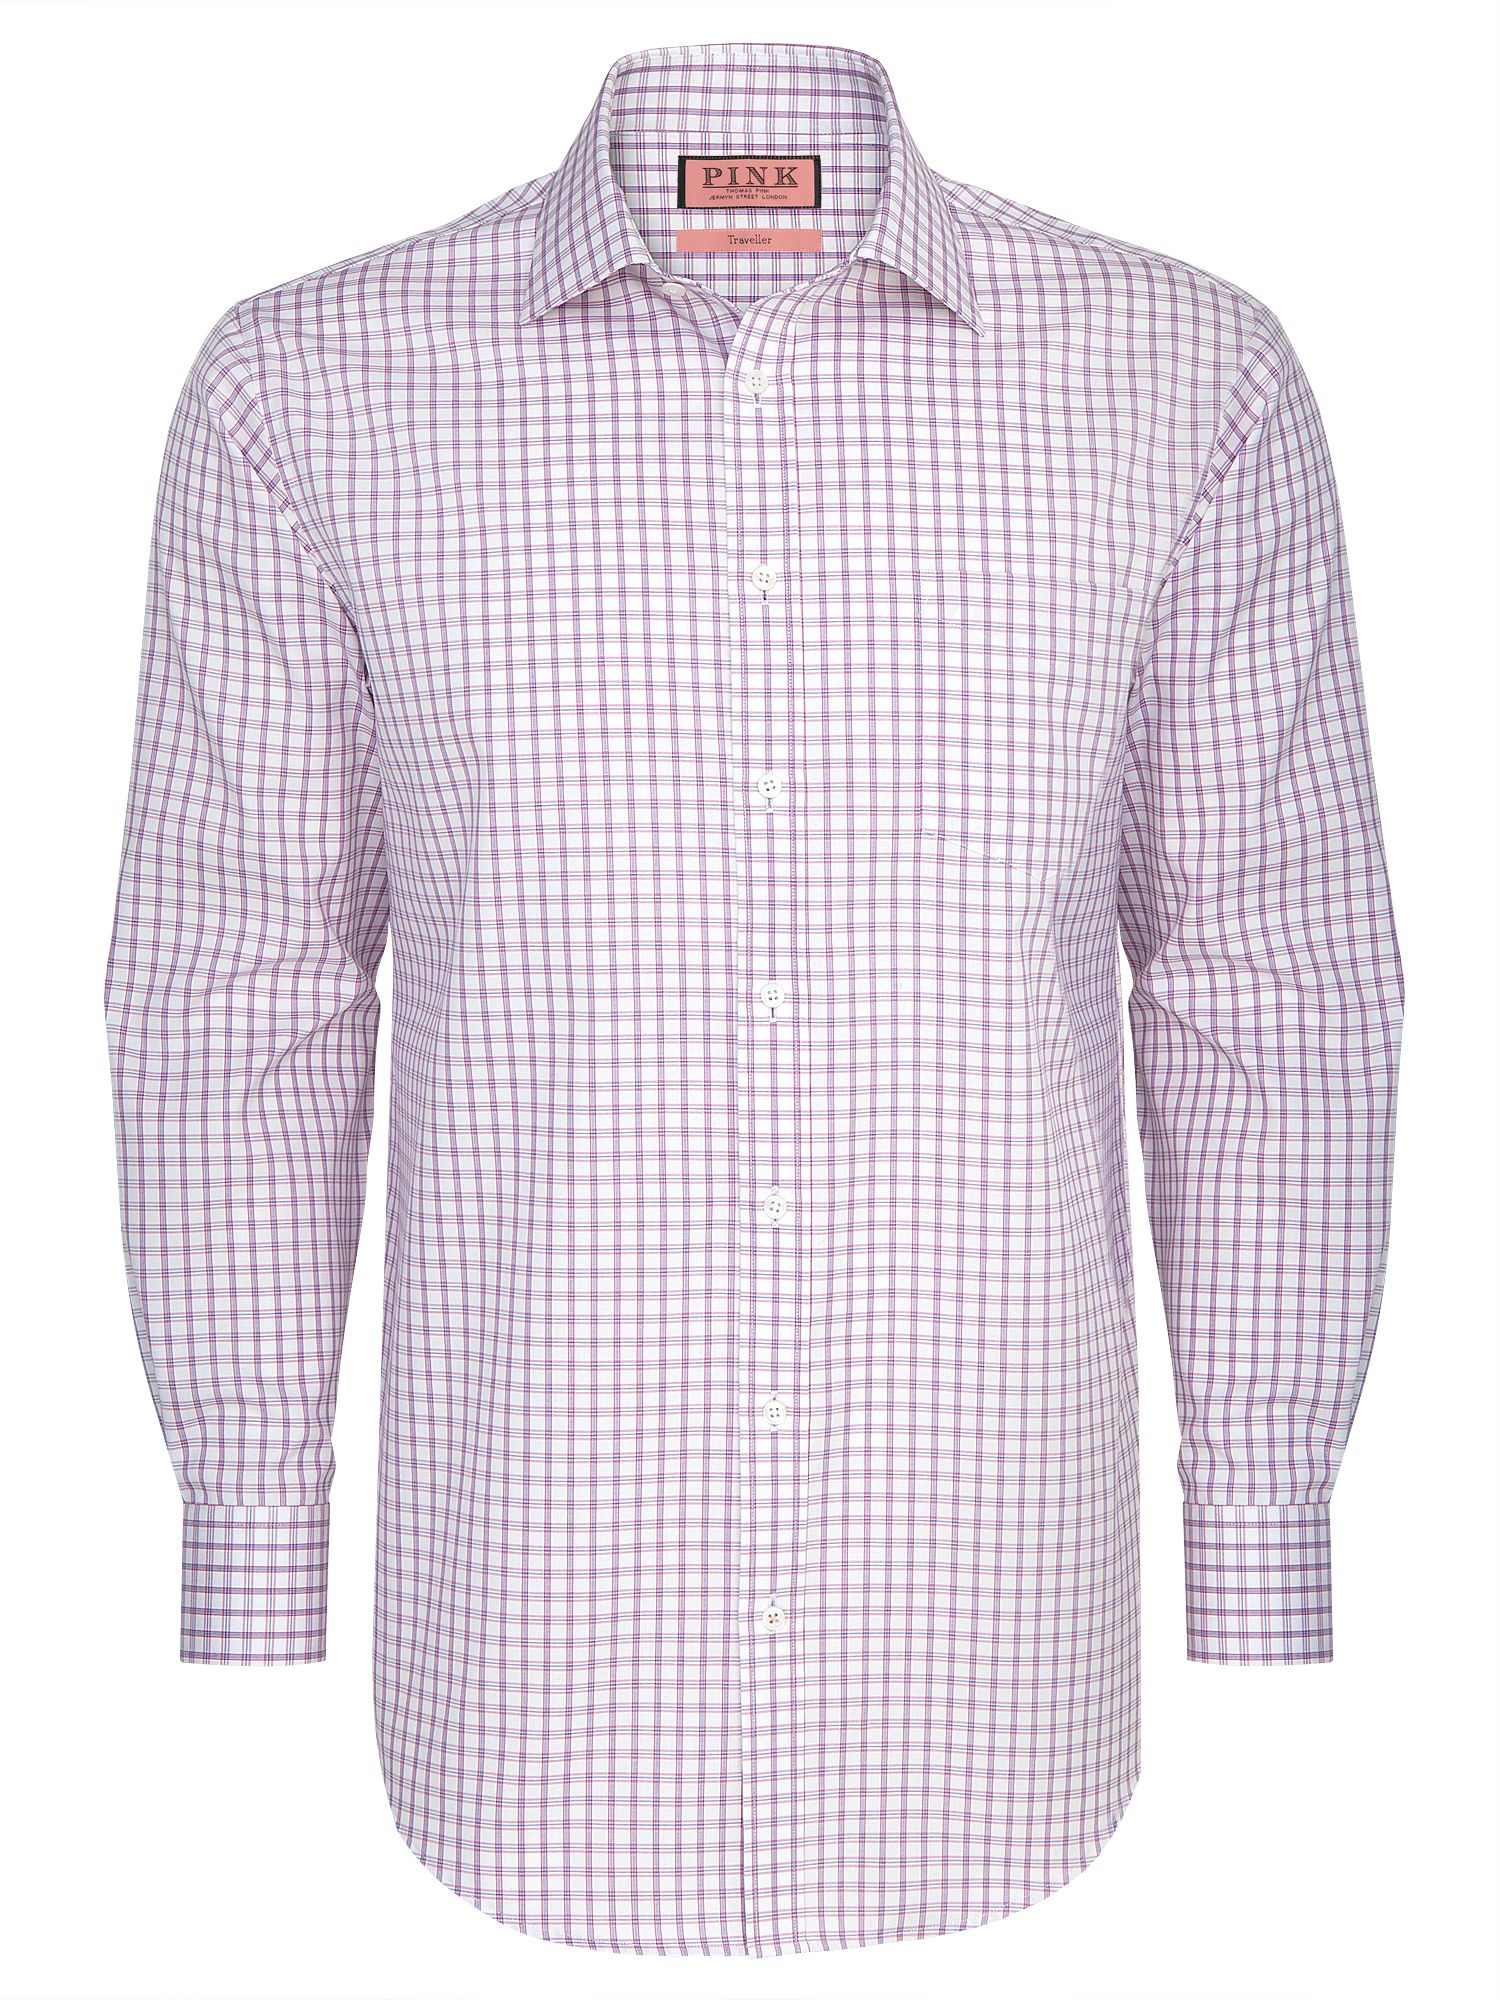 Bell check long sleeve regular fit shirt